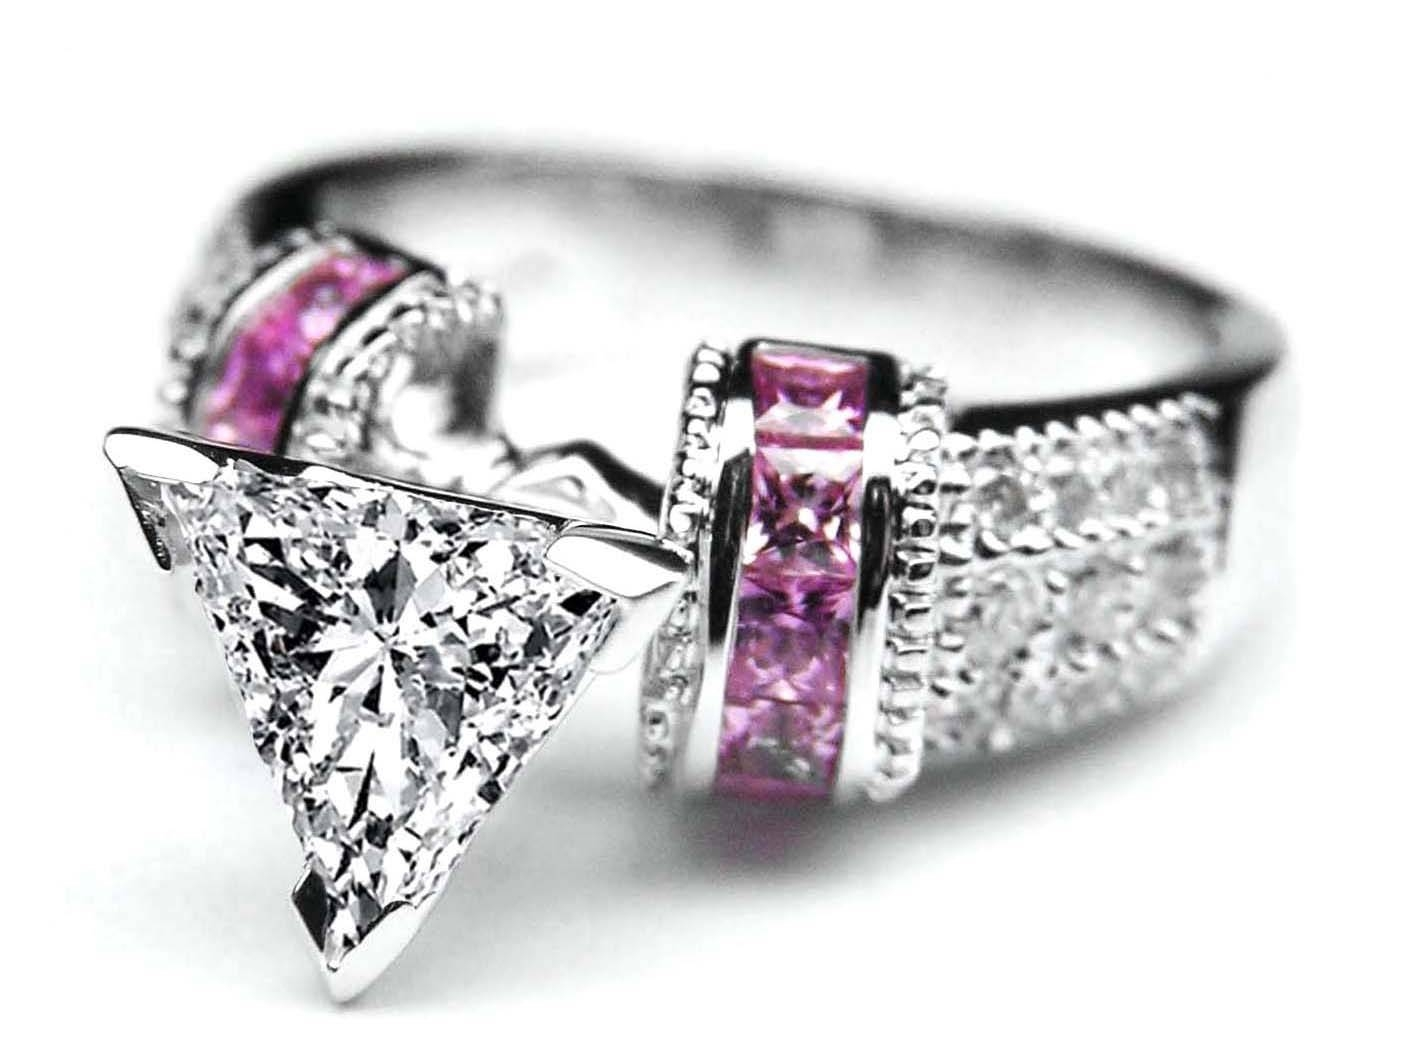 Engagement Ring Trillion Diamond Engagement Ring Square Pink With Triangle Cut Diamond Engagement Rings (View 2 of 15)